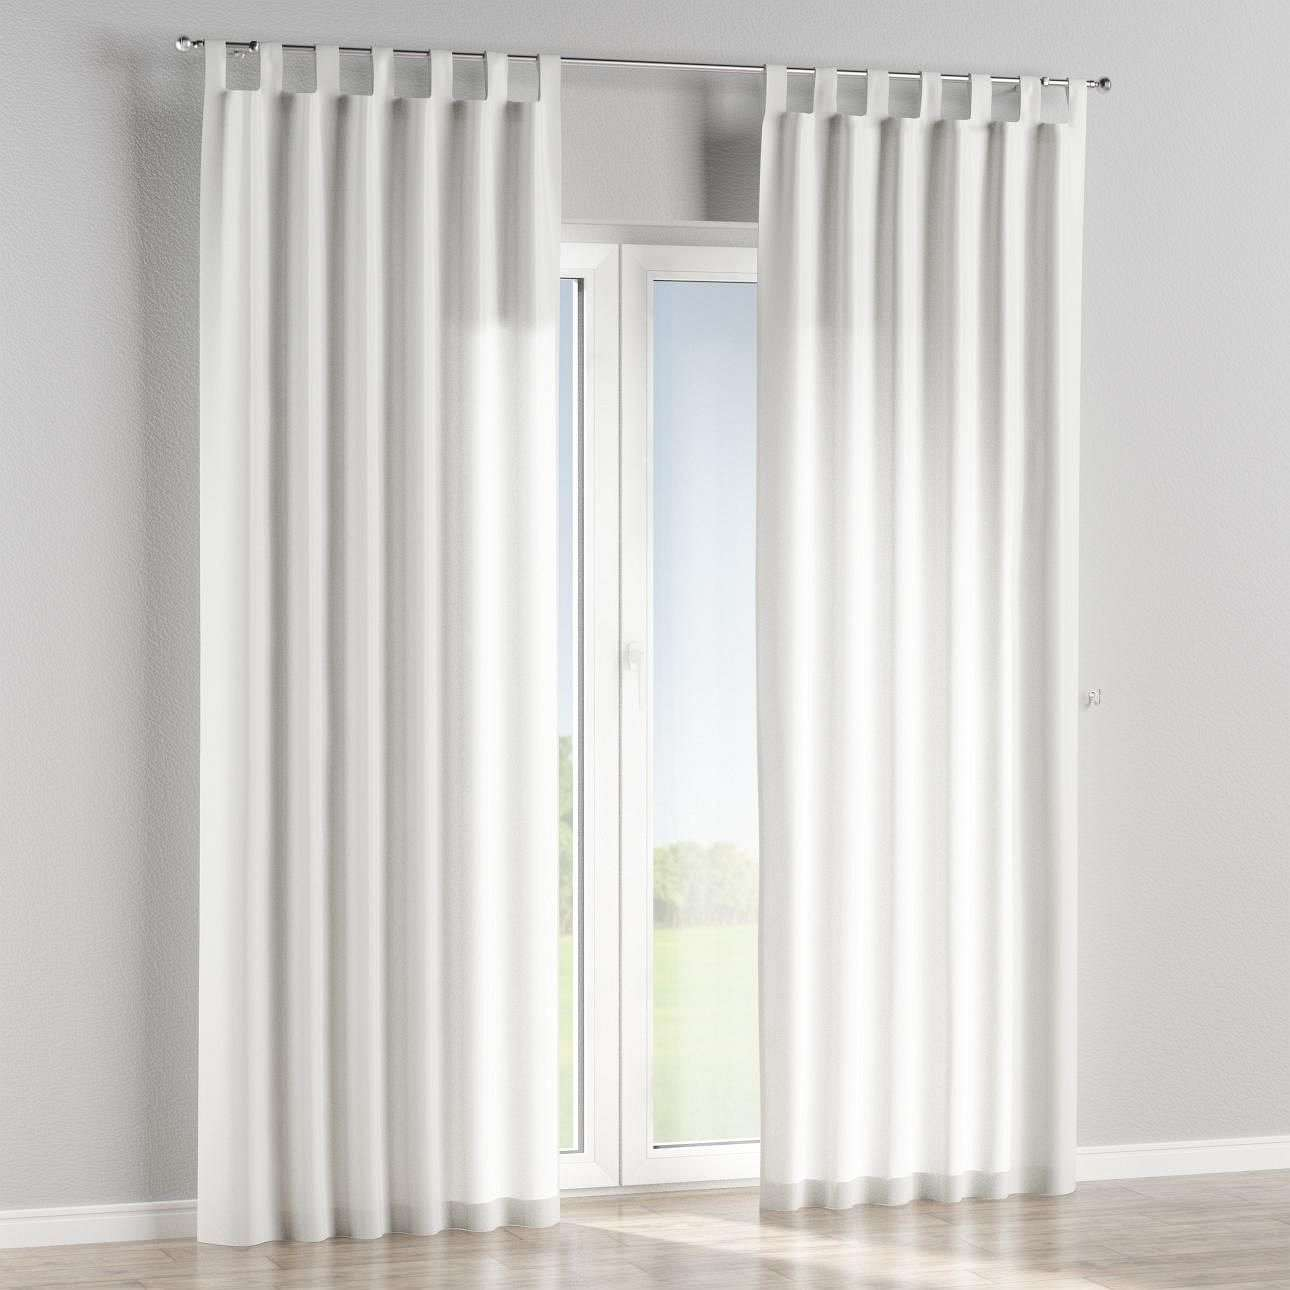 Tab top curtains in collection Norge, fabric: 140-86